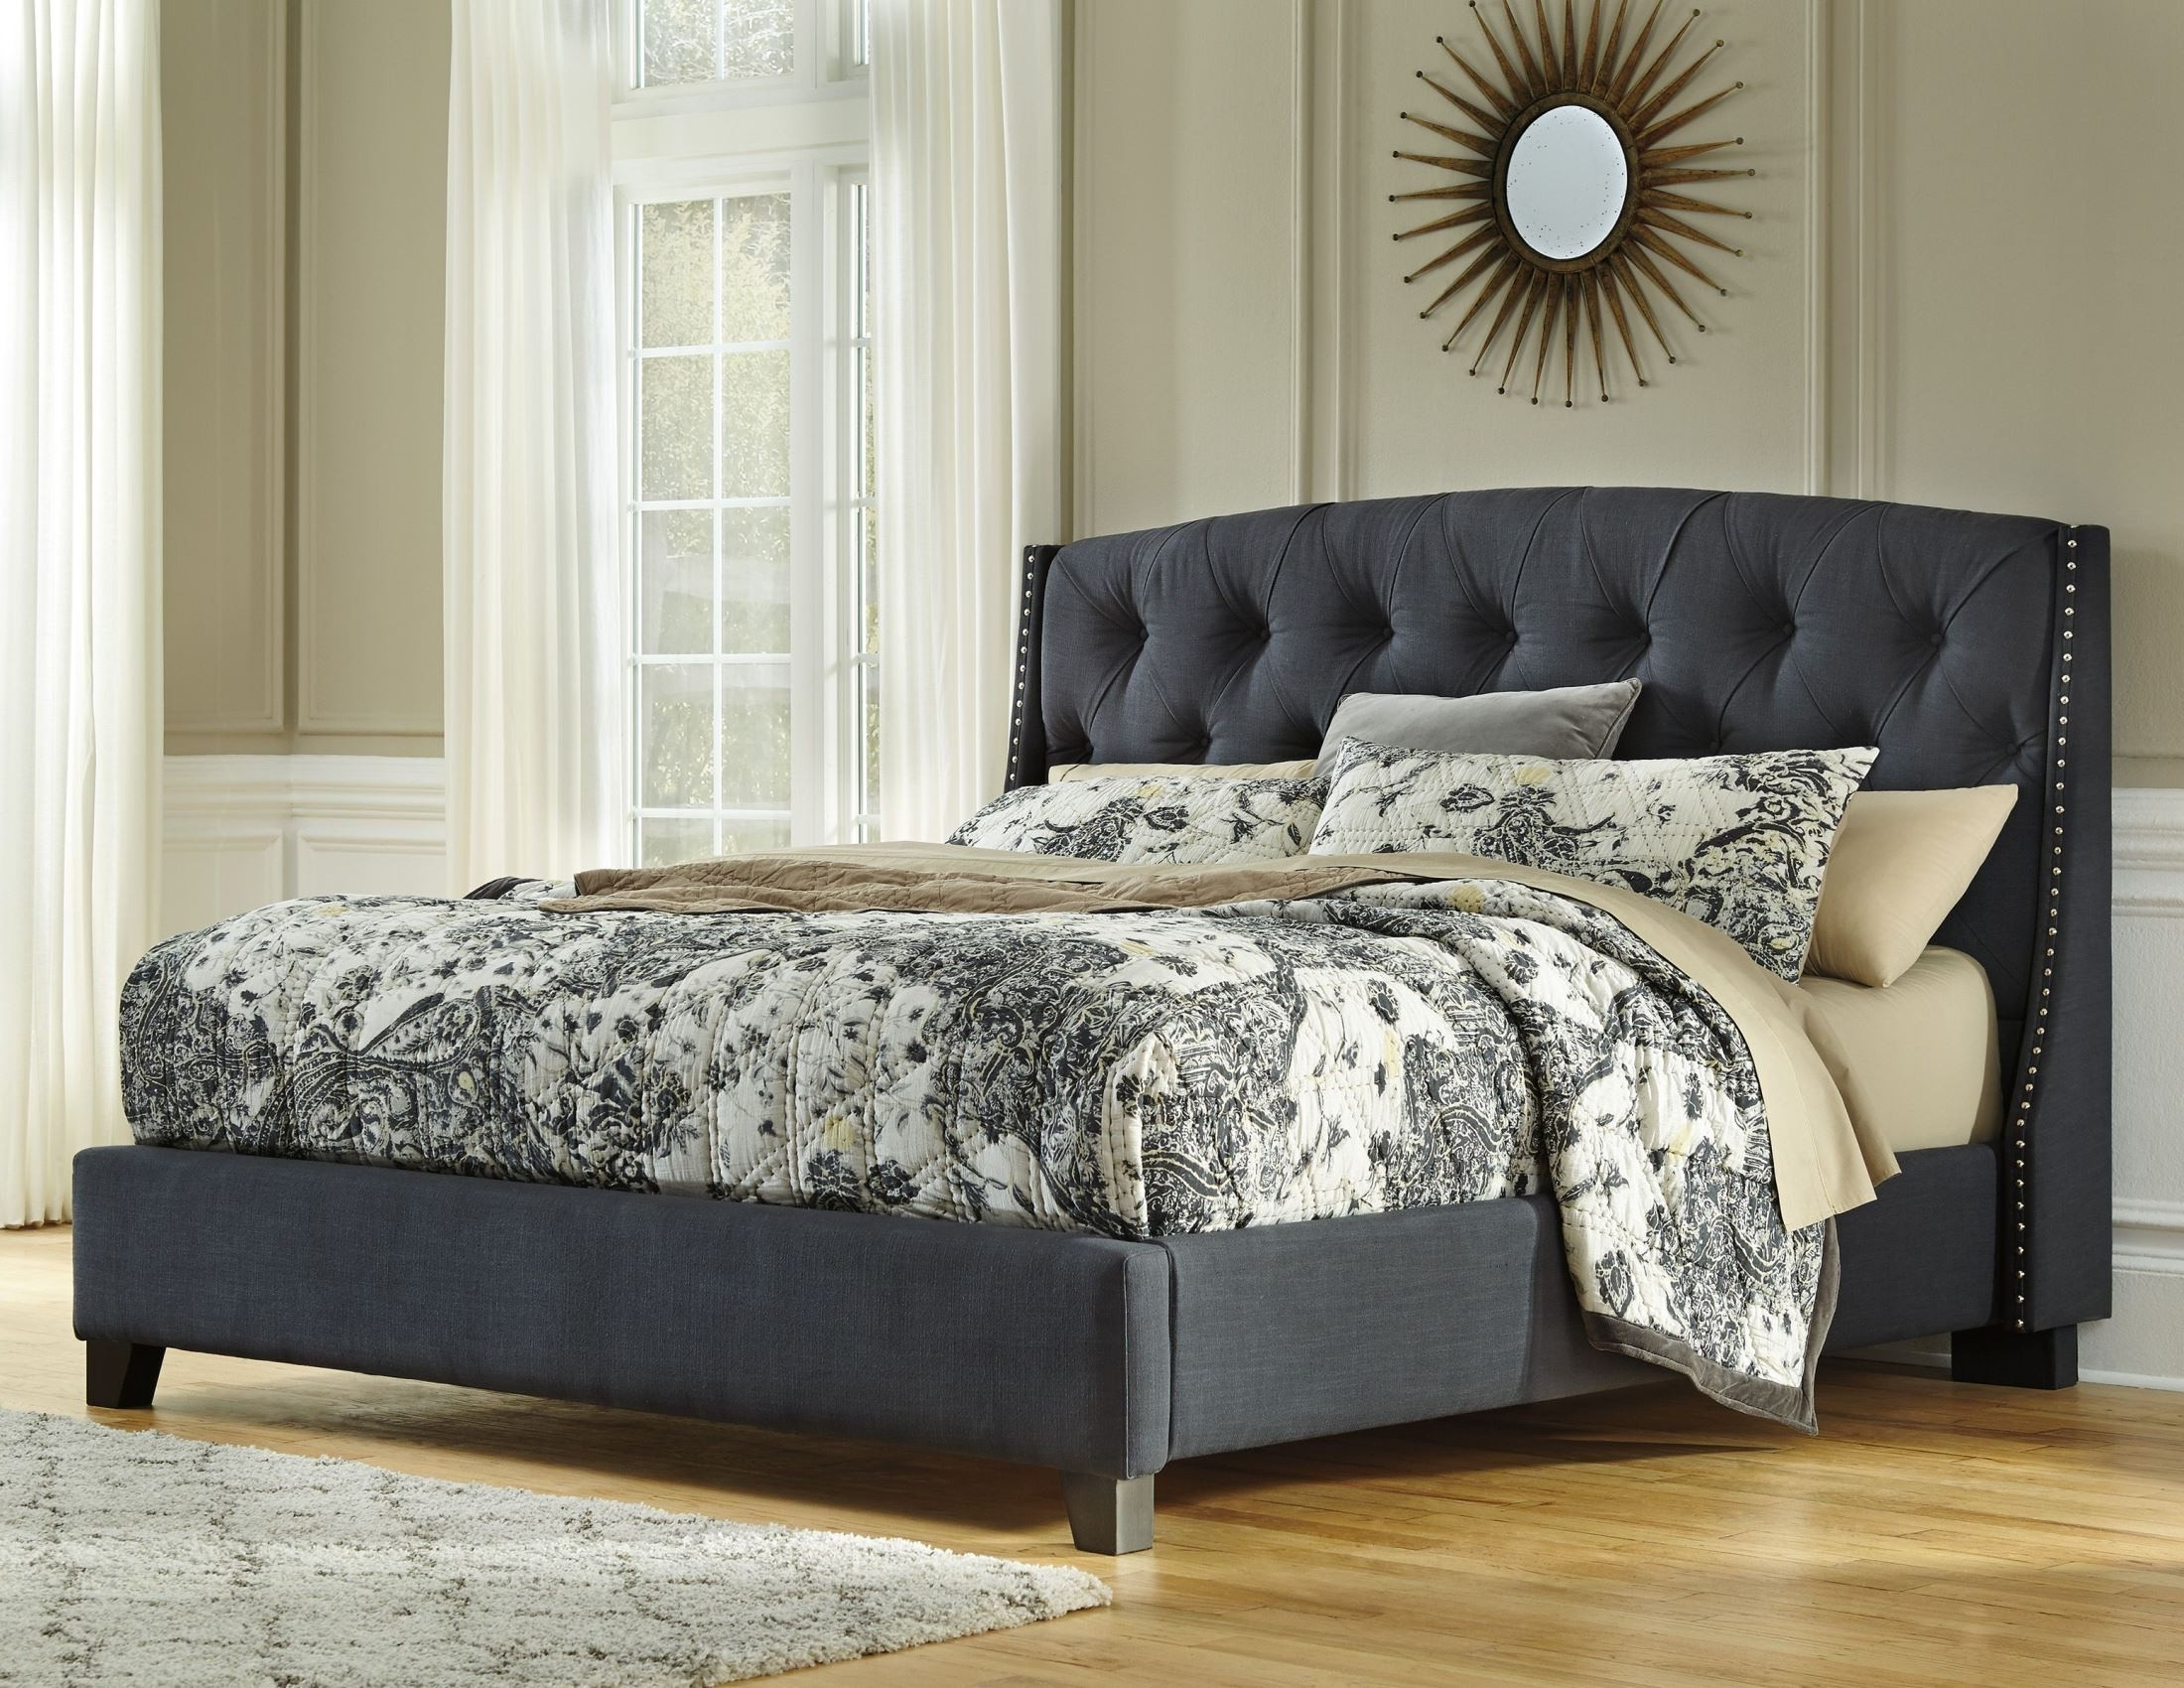 King Upholstered Platform Bed From Ashley (B600 558 556 597 For Current Ashley Tufted Sofas (View 11 of 15)